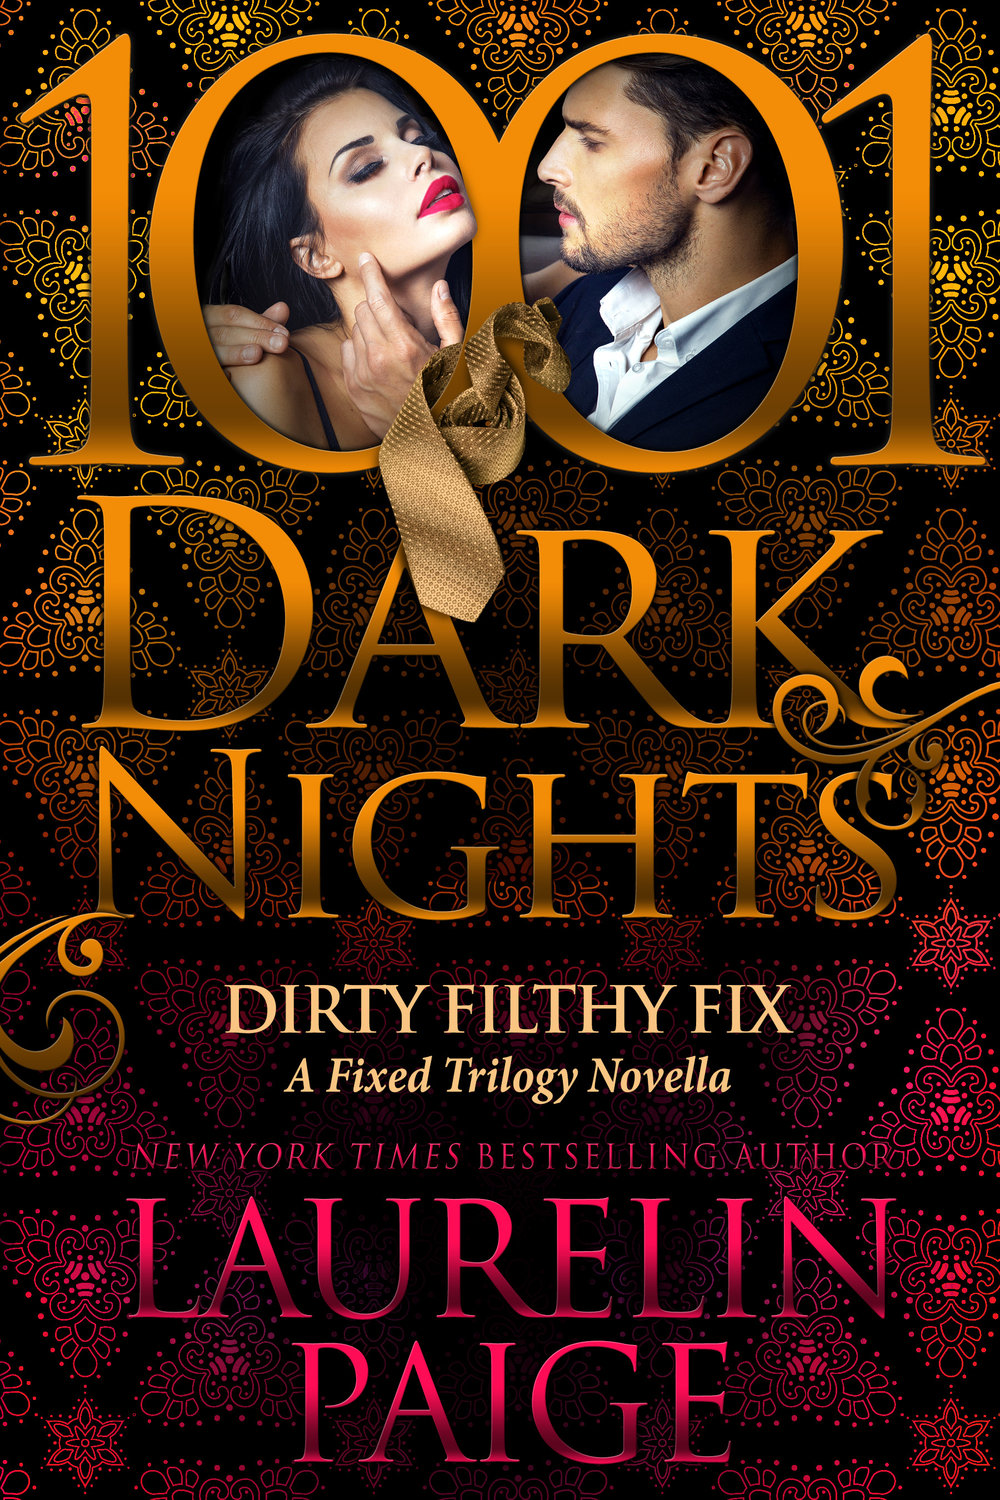 Dirty Filthy Fix #9